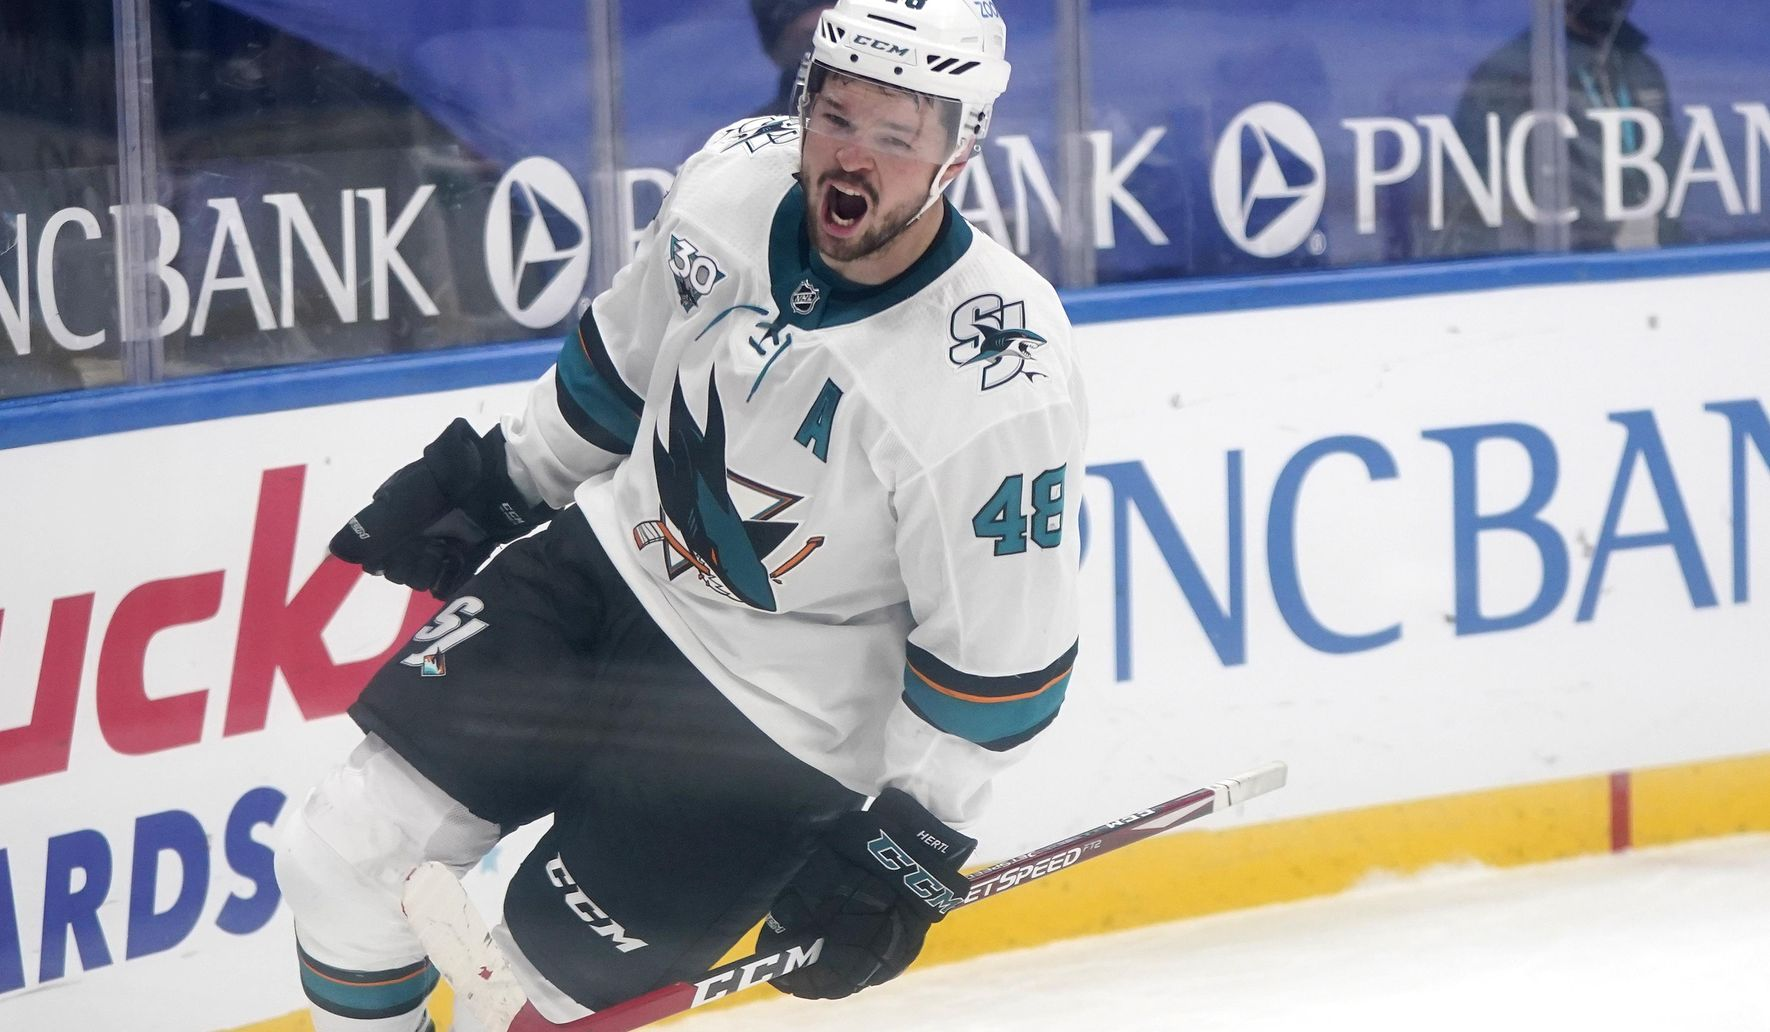 Sharks_blues_hockey_61189_c0-148-3544-2214_s1770x1032